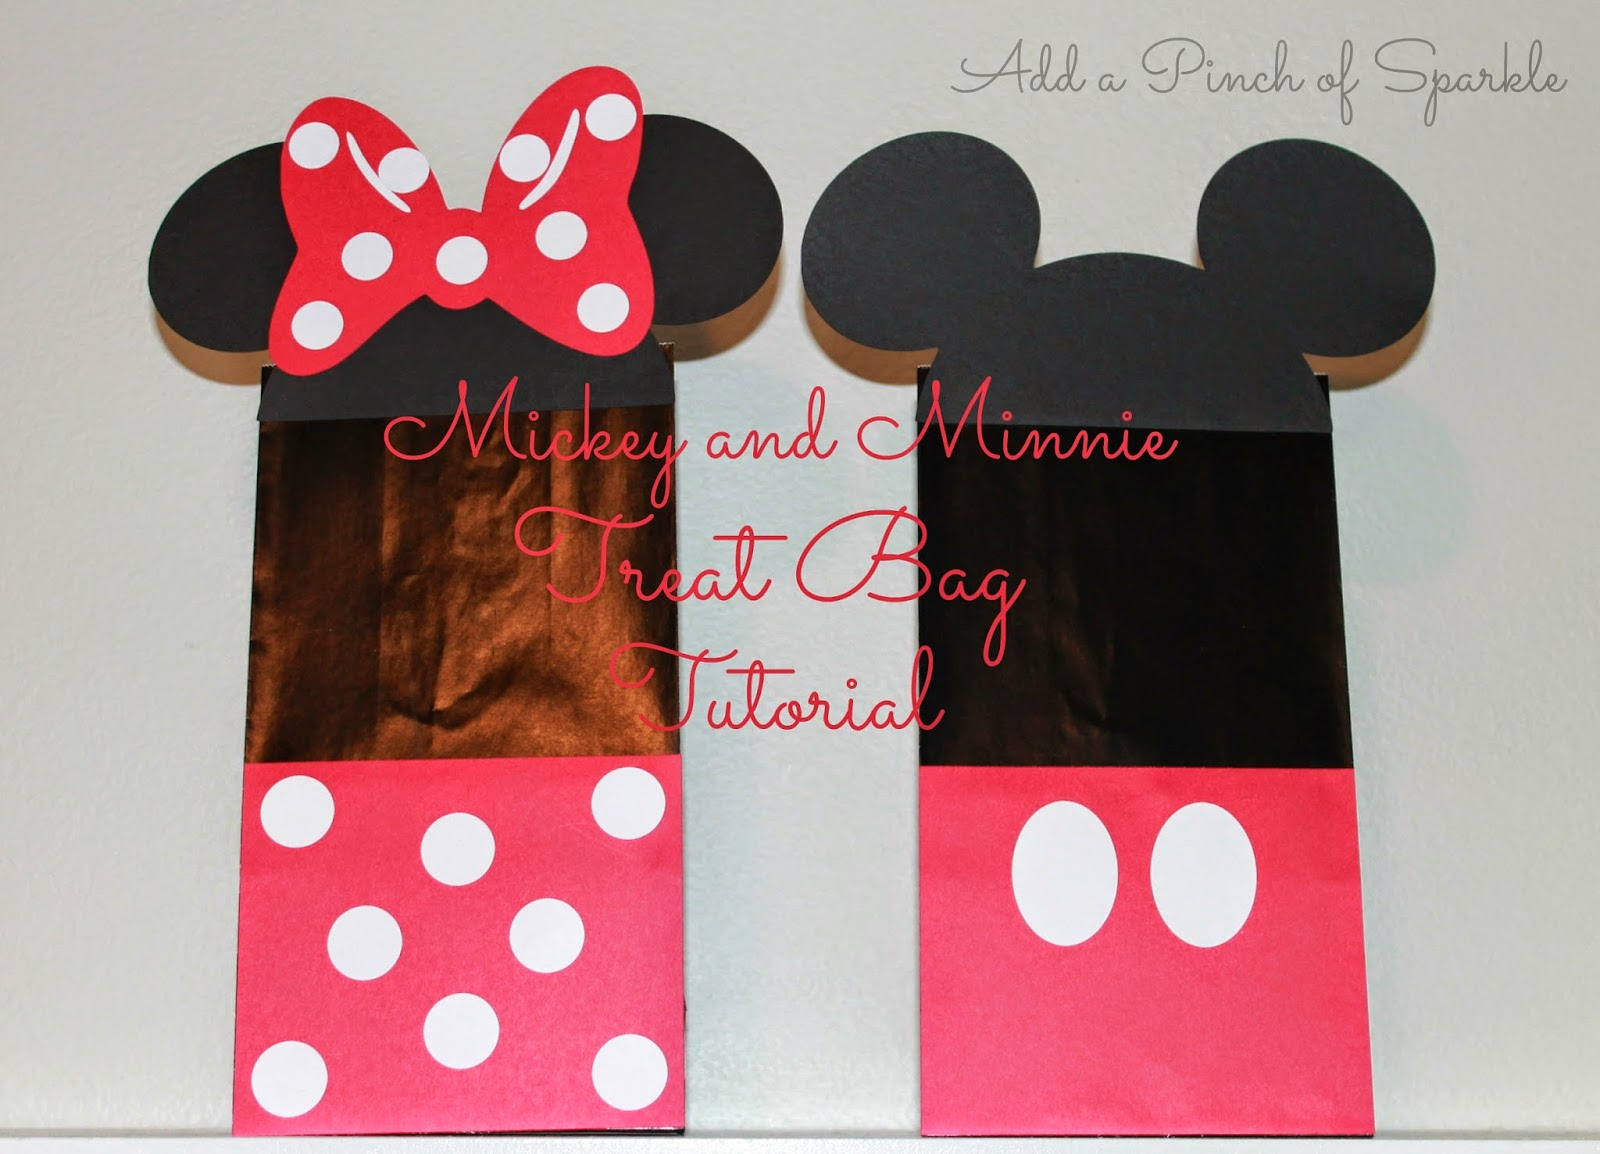 I Recently Made Some Mickey And Minnie Treat Bags For A Mouse Themed Birthday Party Got The Inspiration Them By Searching Internet